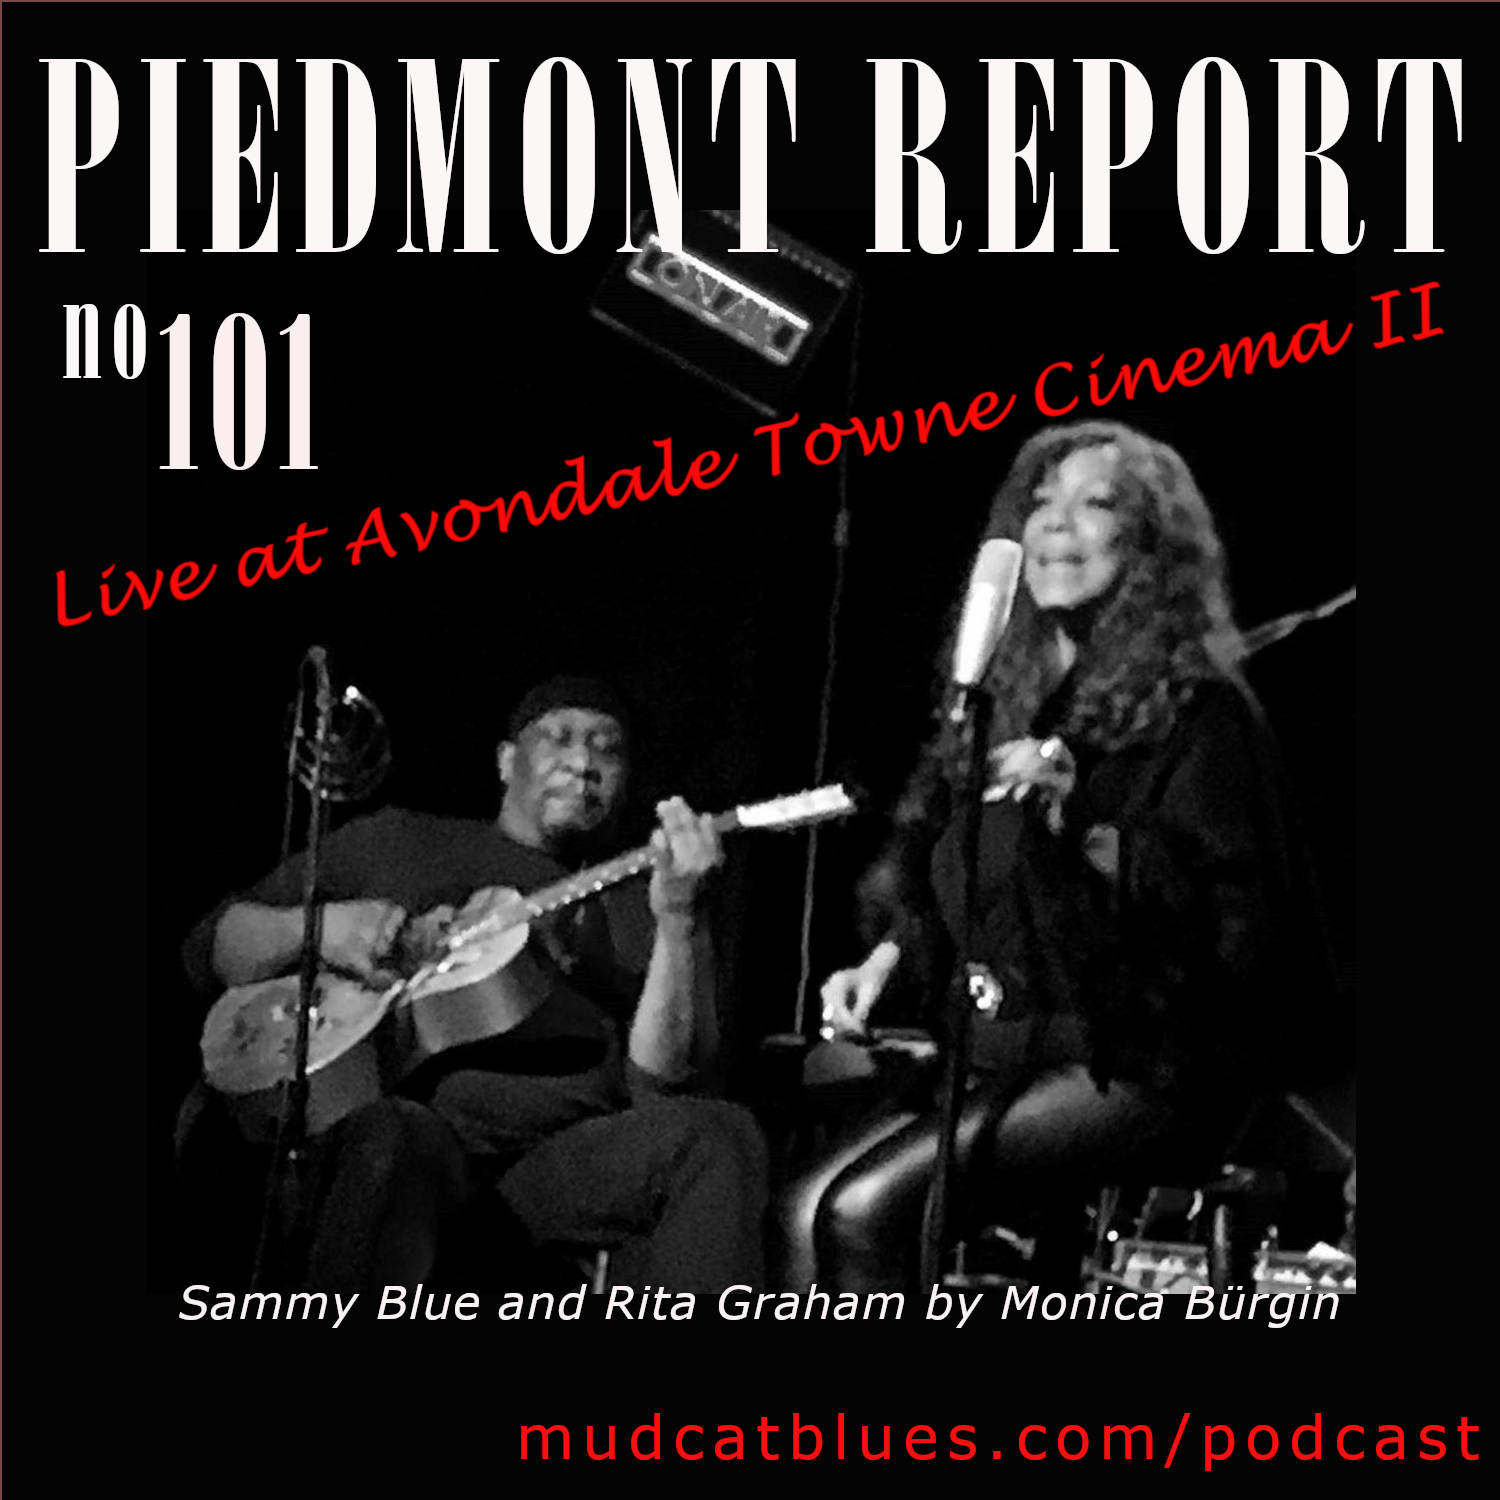 Piedmont Report 101 (Live at Avondale)